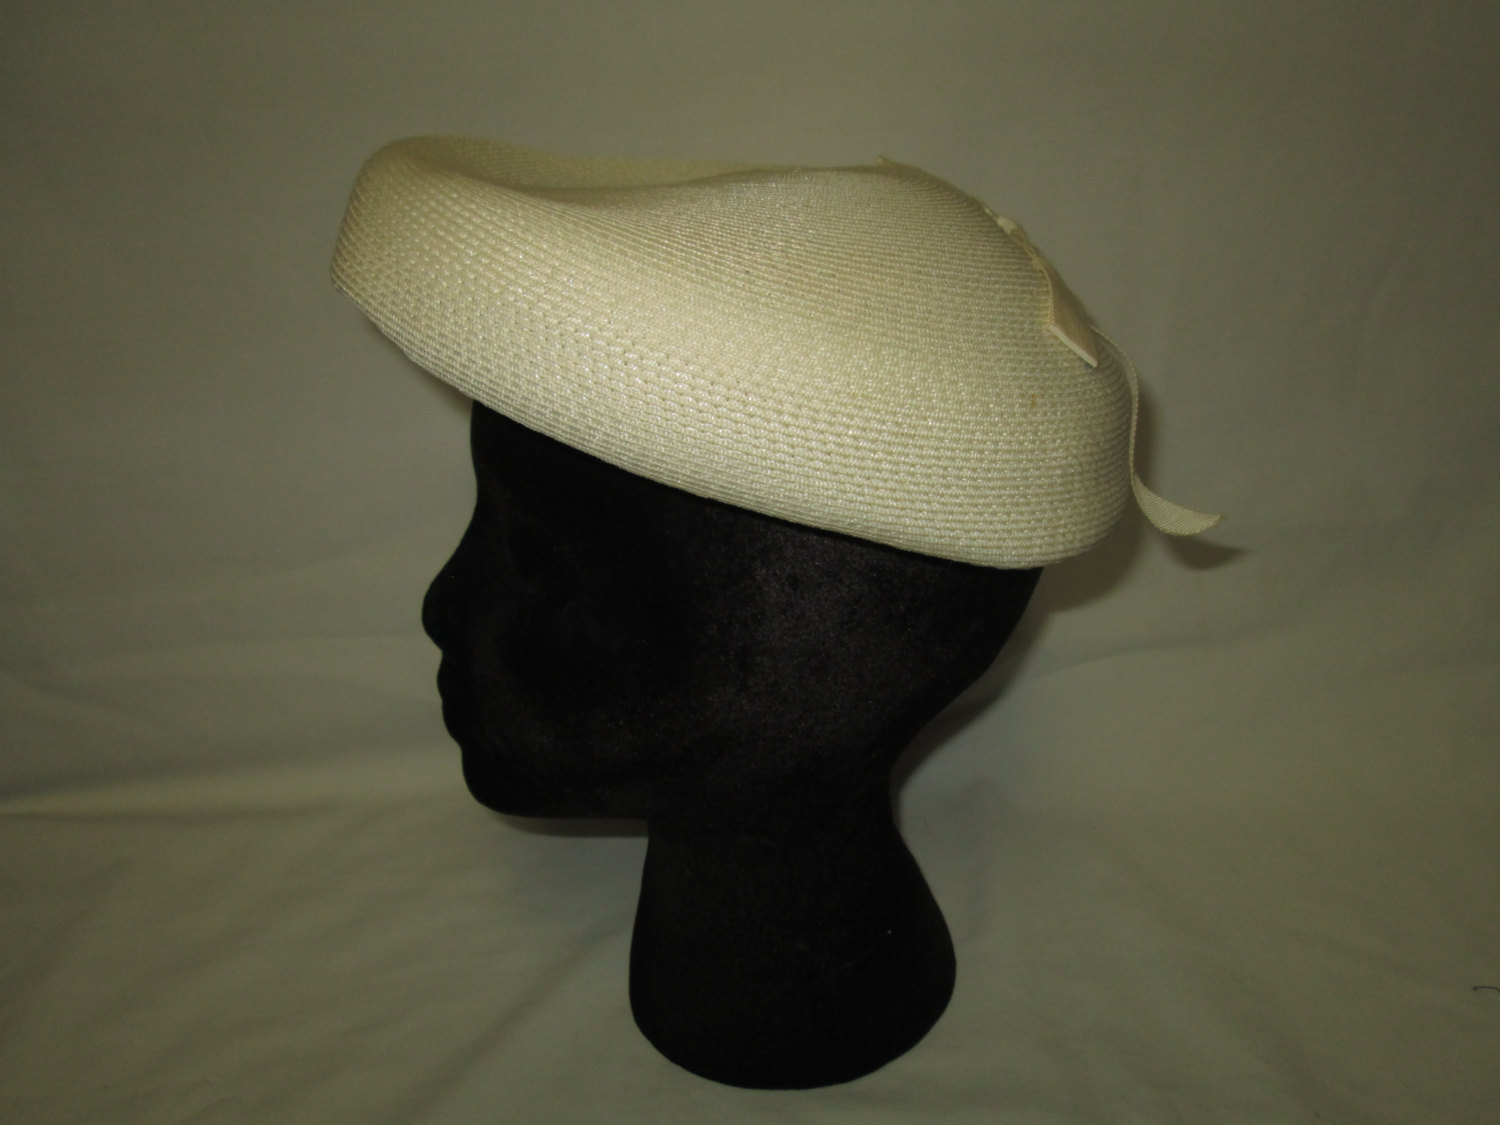 Vintage 1940 s Valerie modes Original Pillbox style hat size Large 23 Ivory Straw  hat Summer hat 07f223262b4